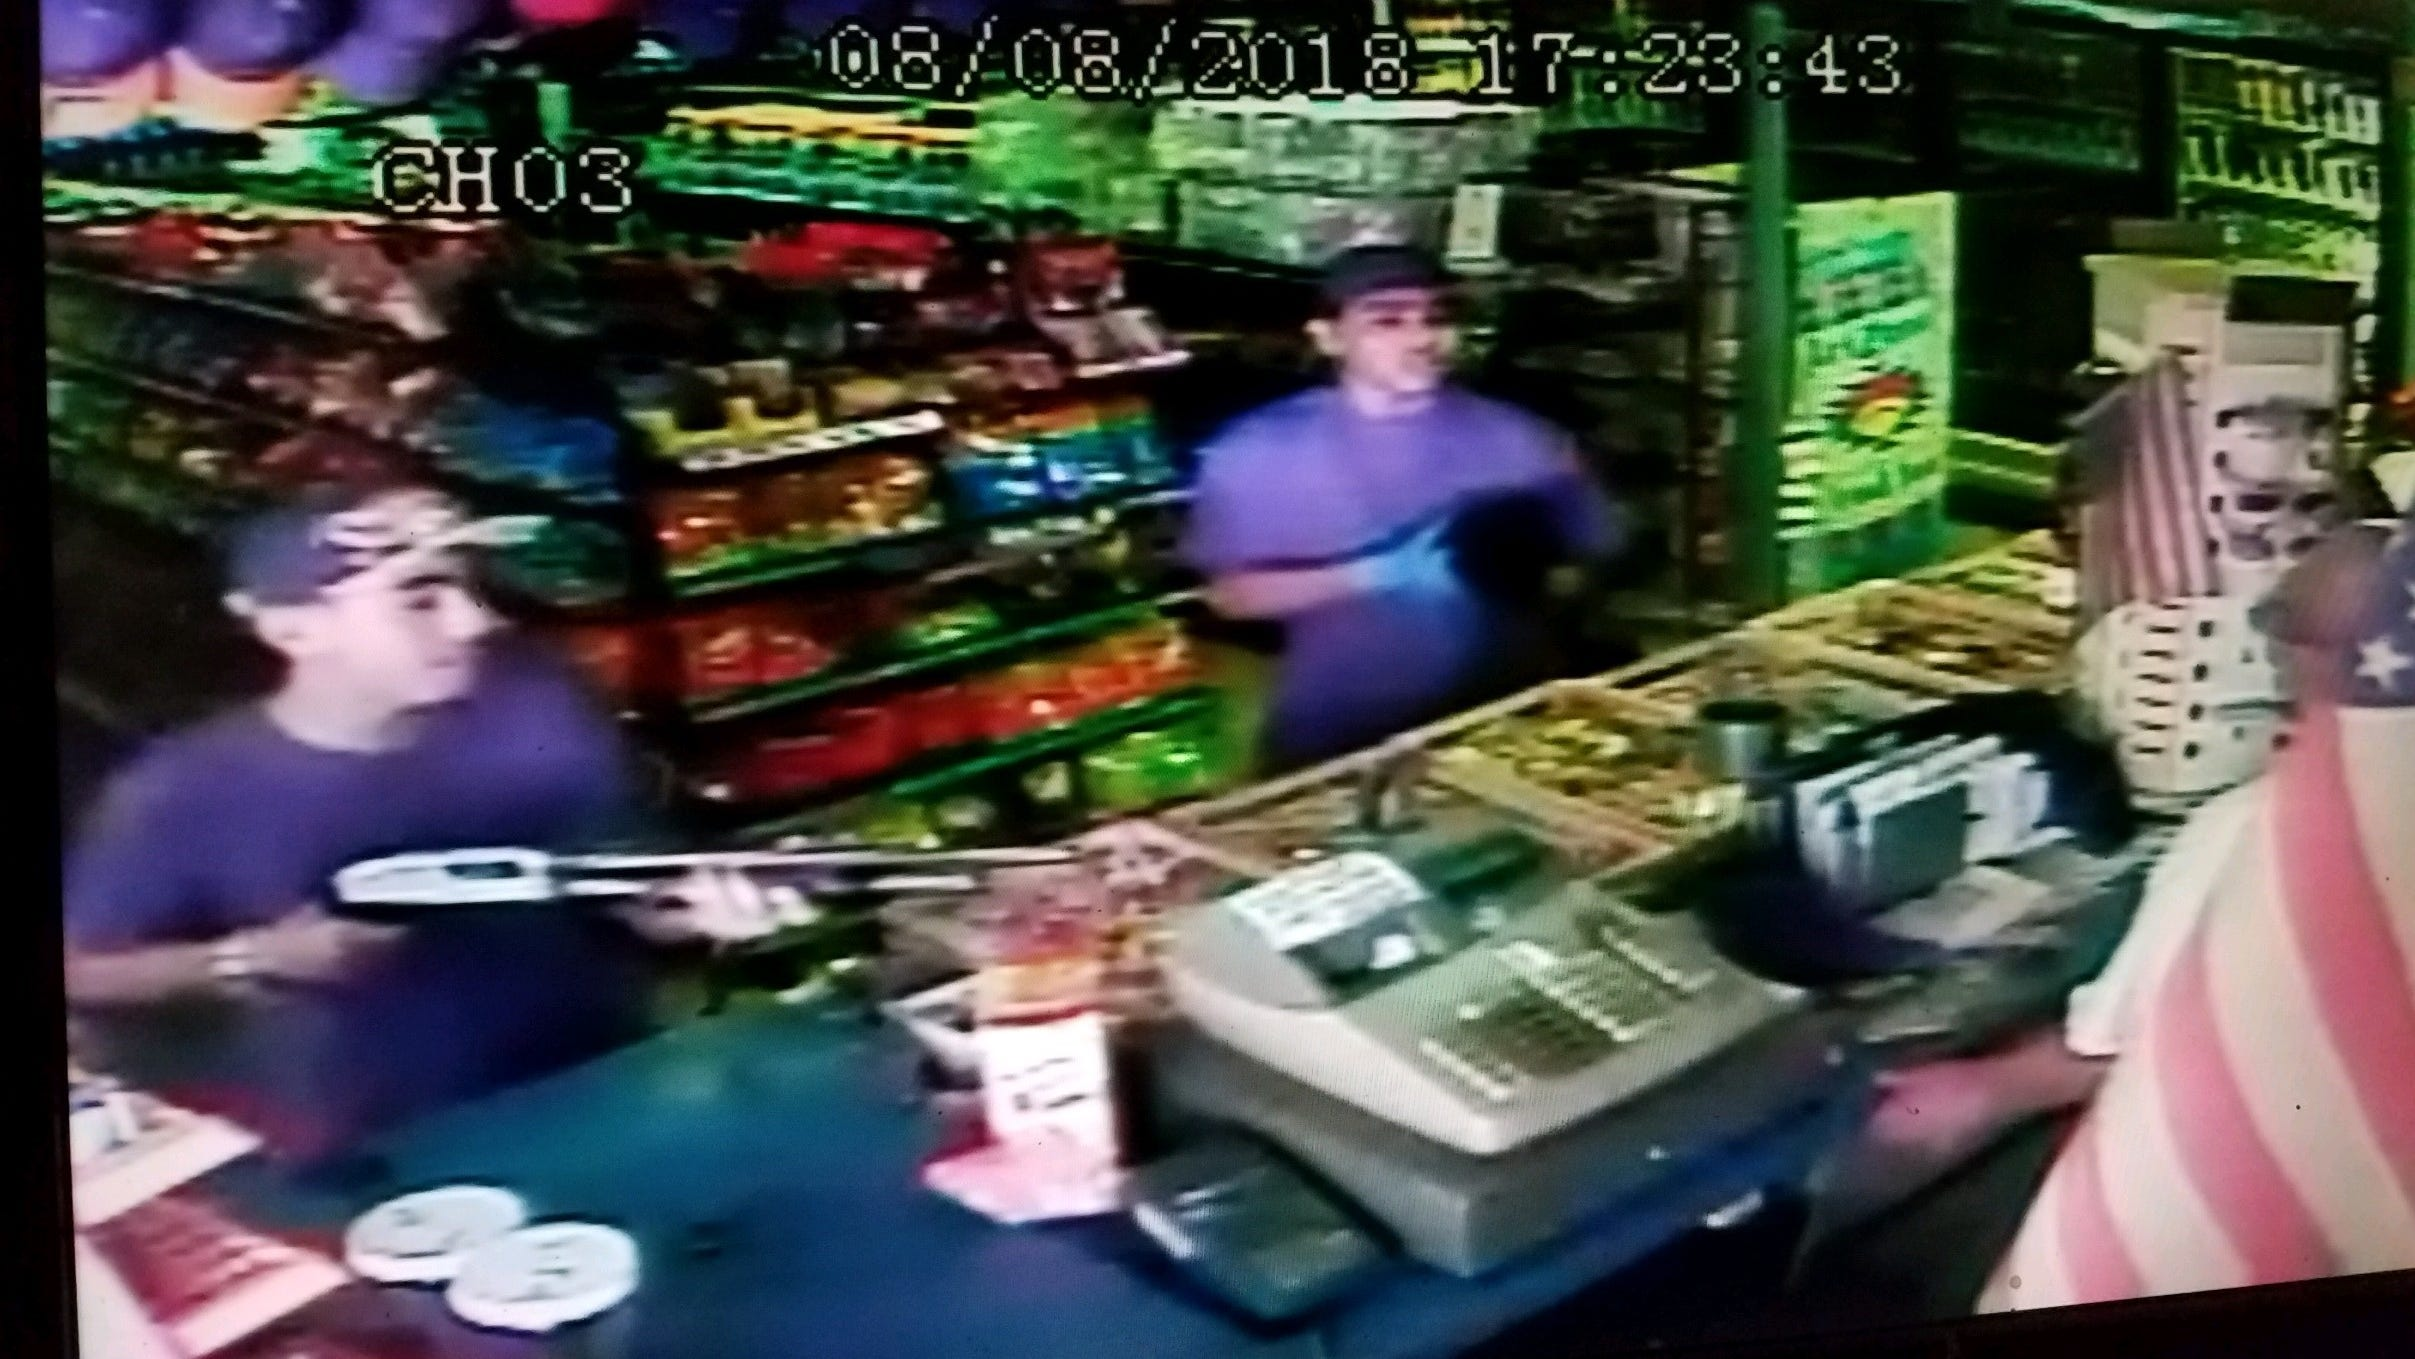 Deputies are searching for these men who are suspected of robbing a Tulare County liquor store.